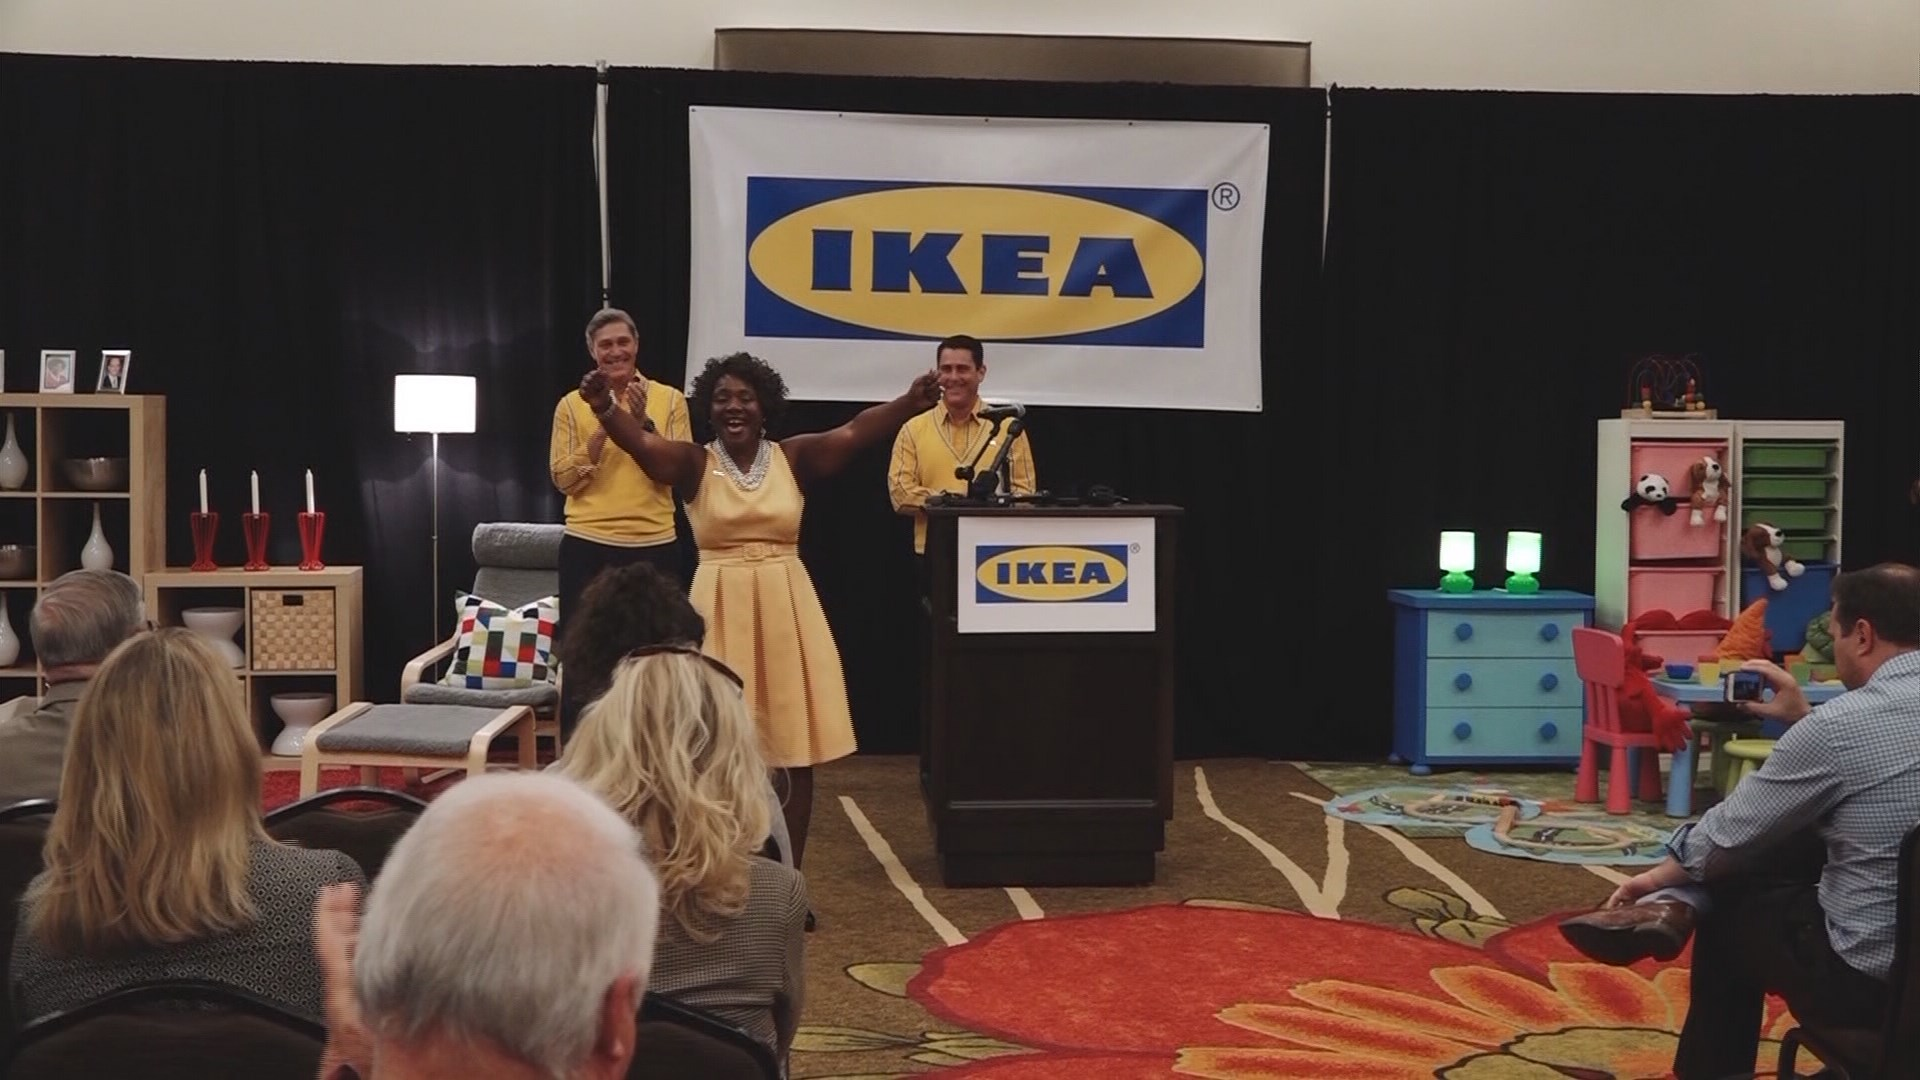 How live oak was able to land ikea for Ikea san antonio